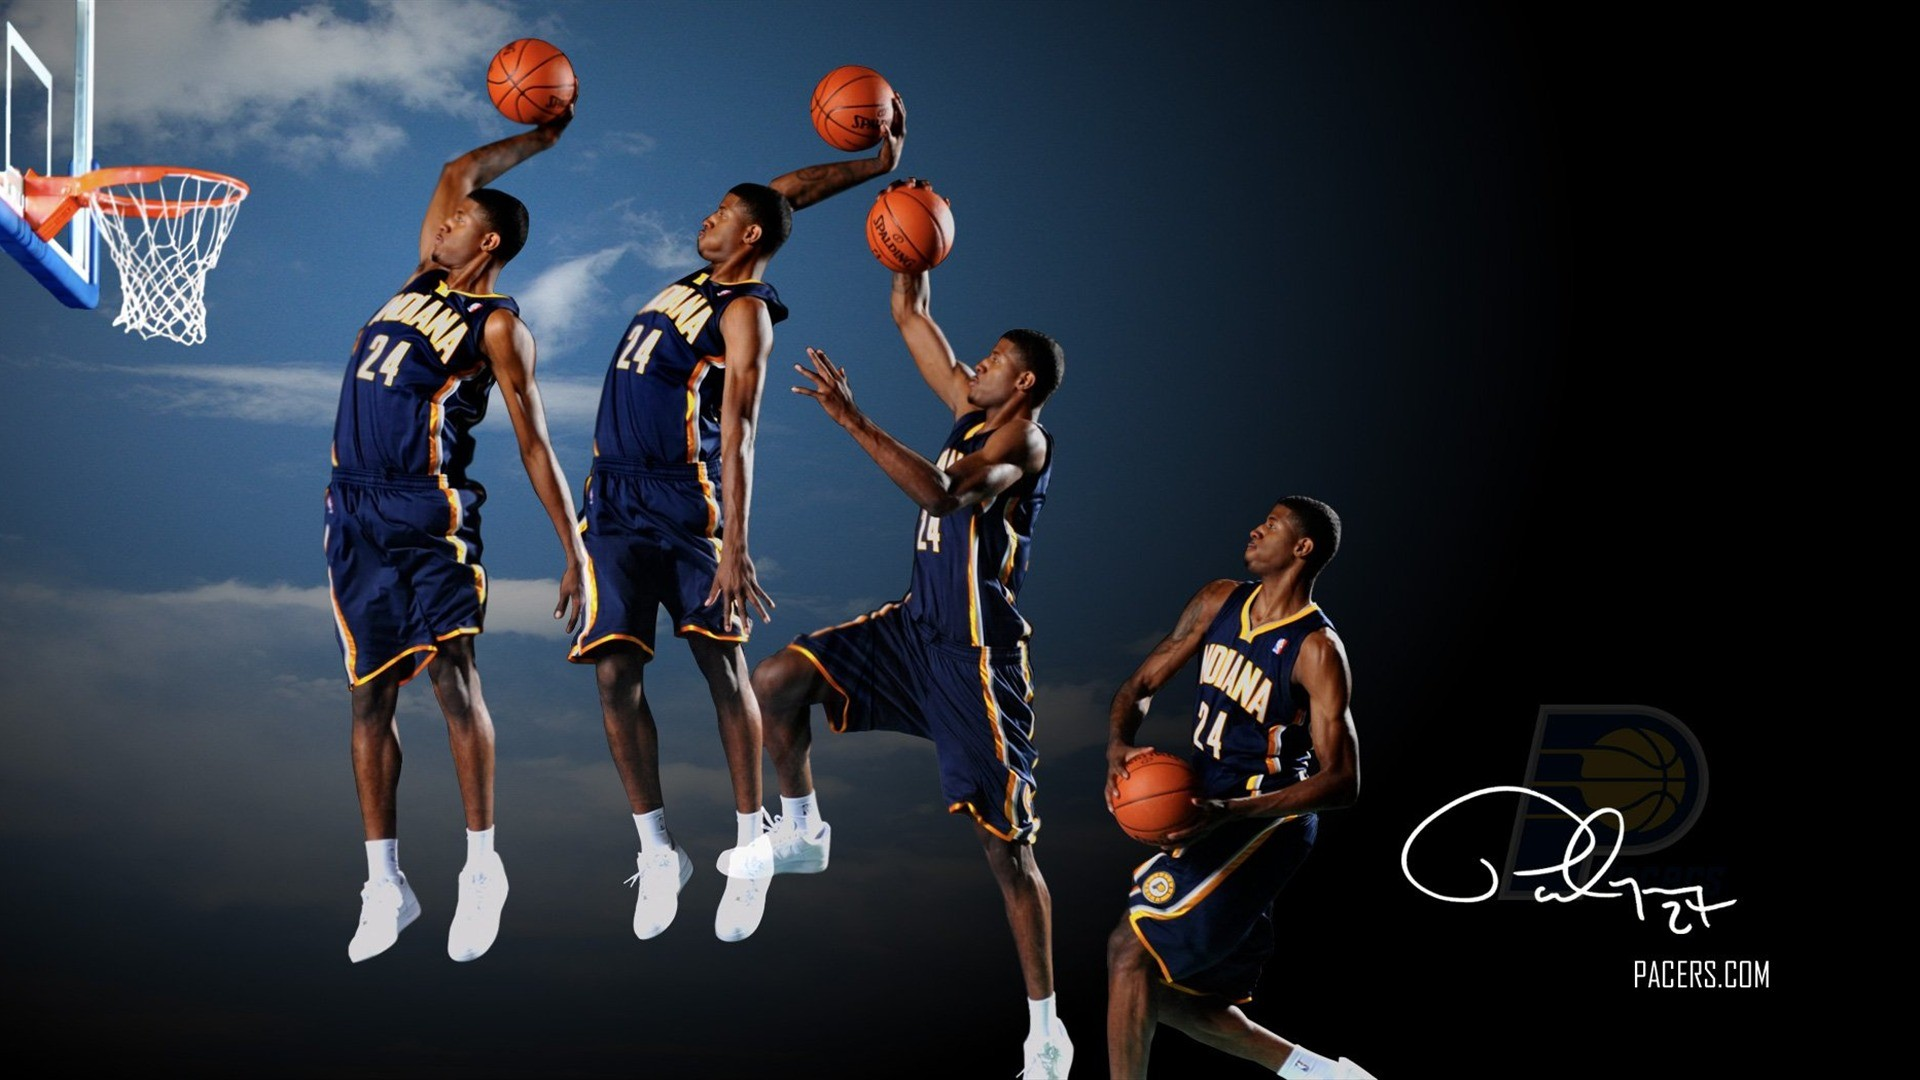 1920x1080 Indiana Pacers Wallpaper 15 - 1920 X 1080